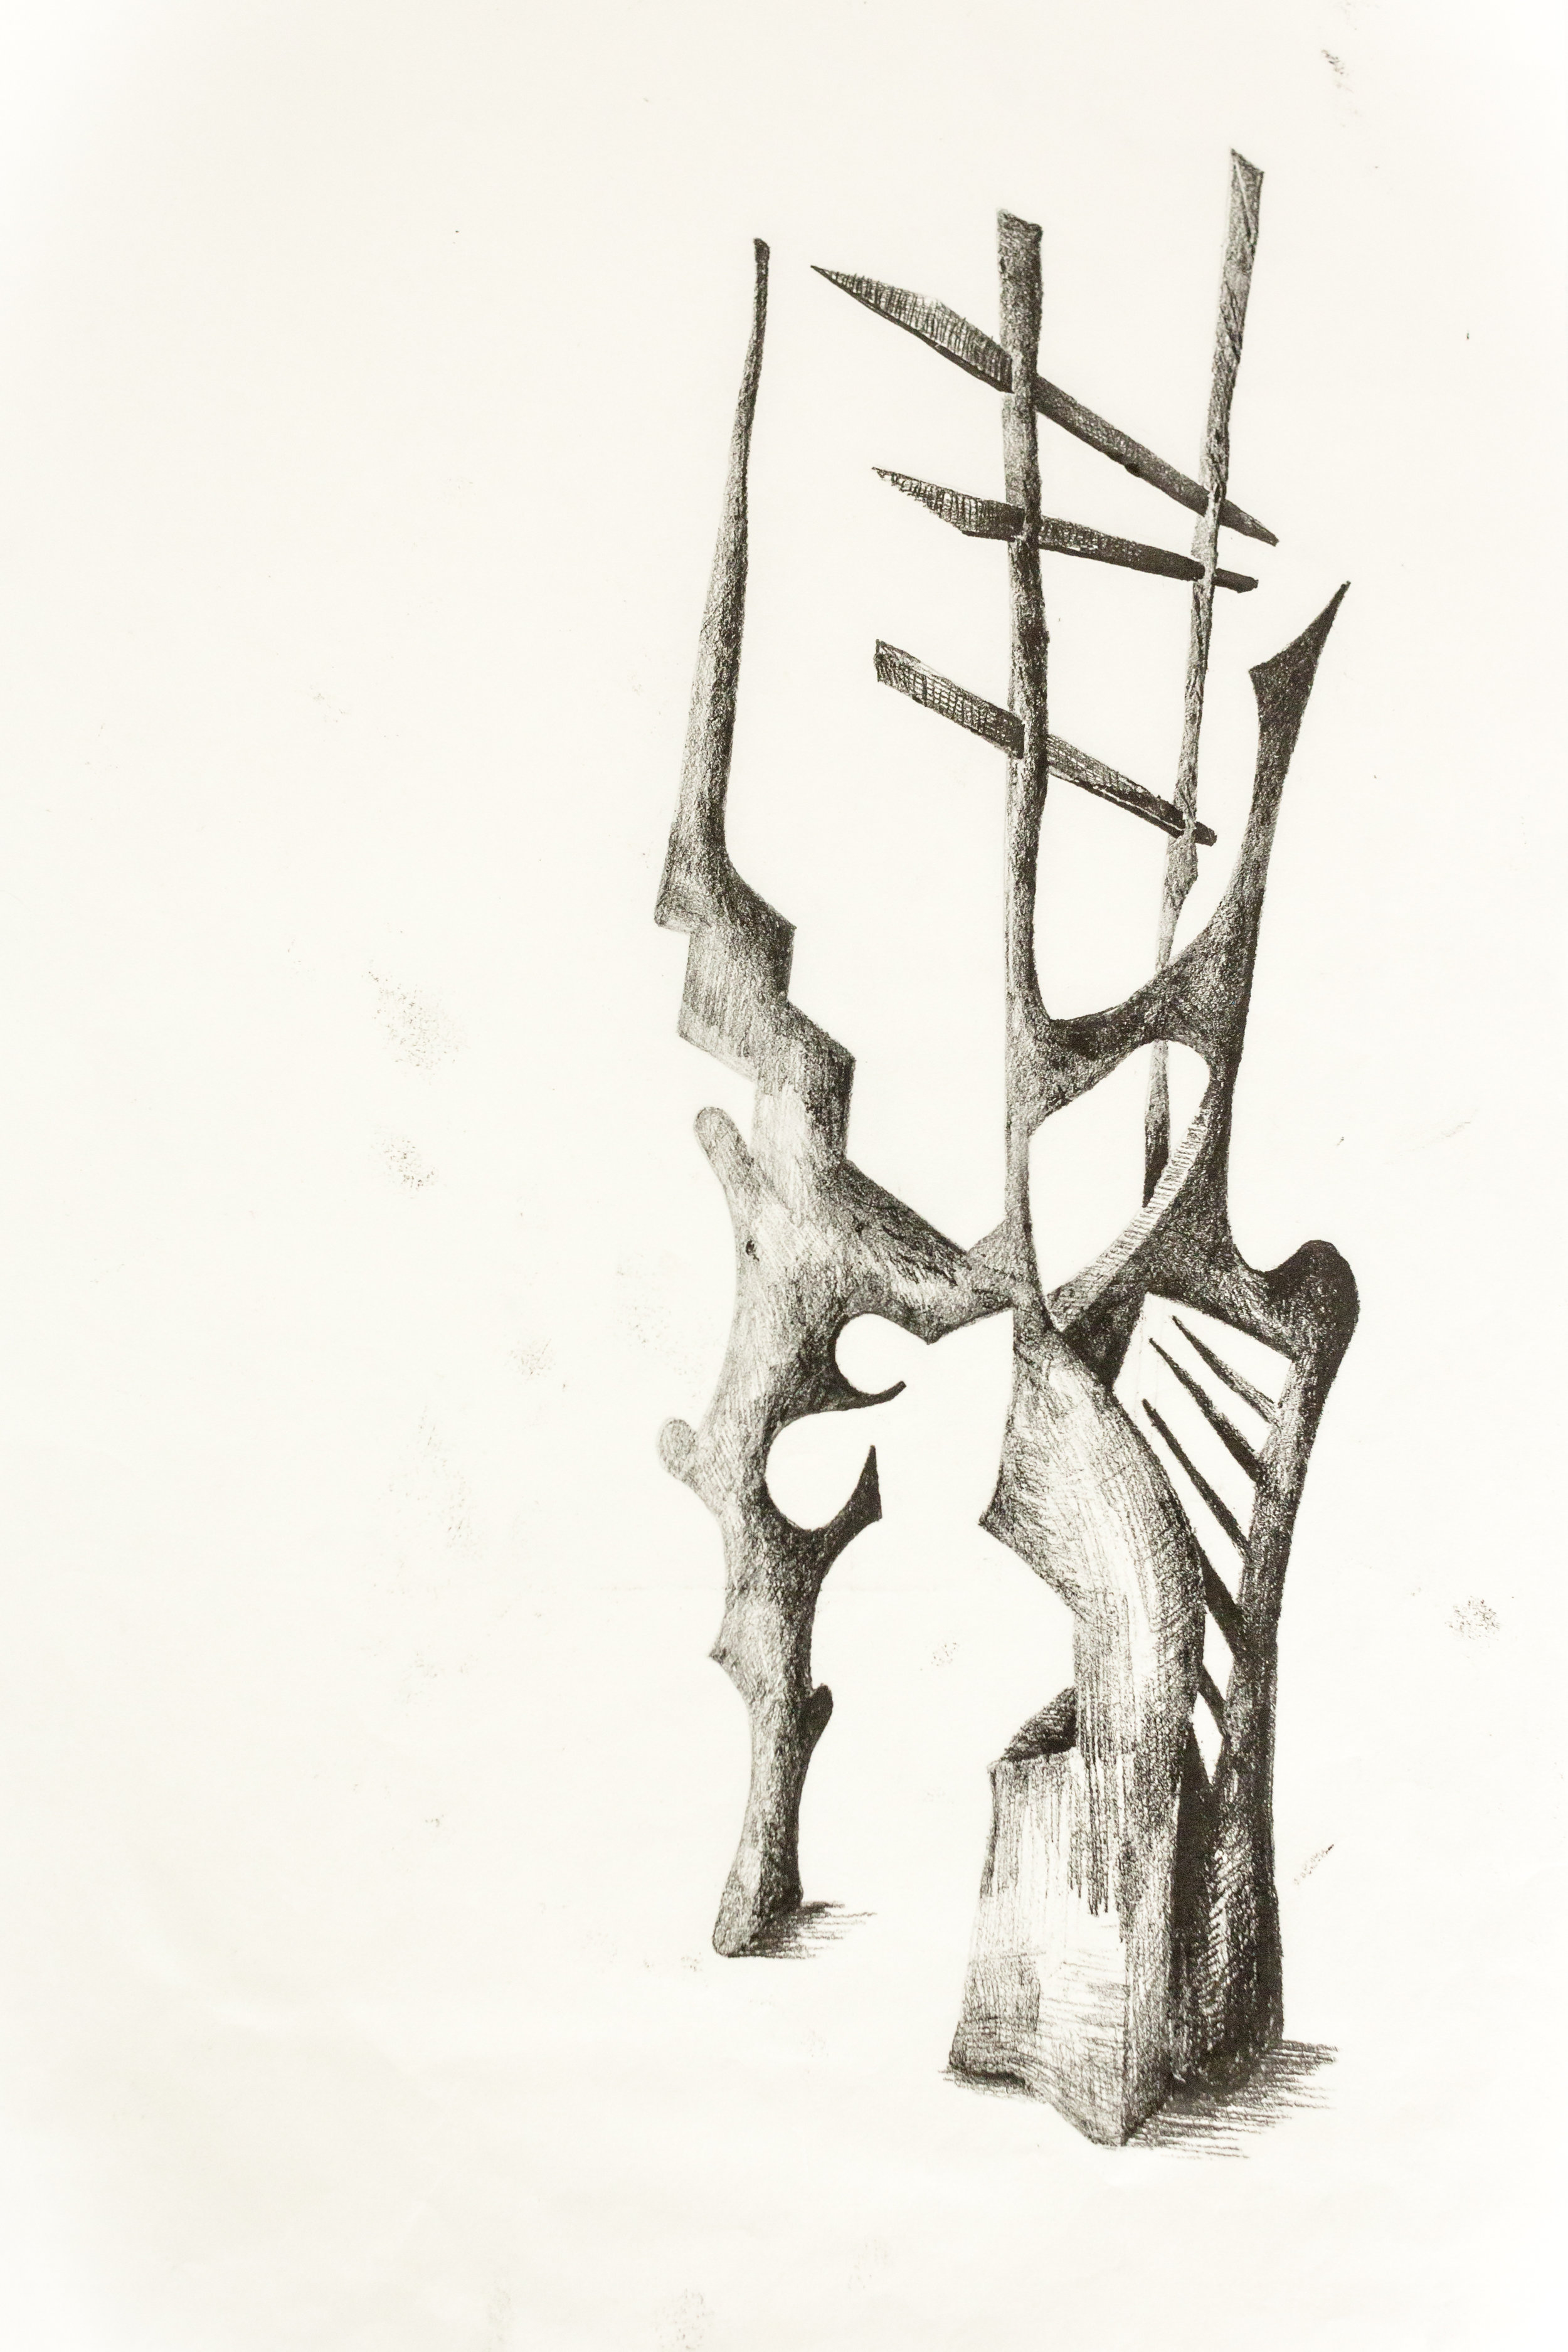 'Untitled Sculpture Drawing viii'